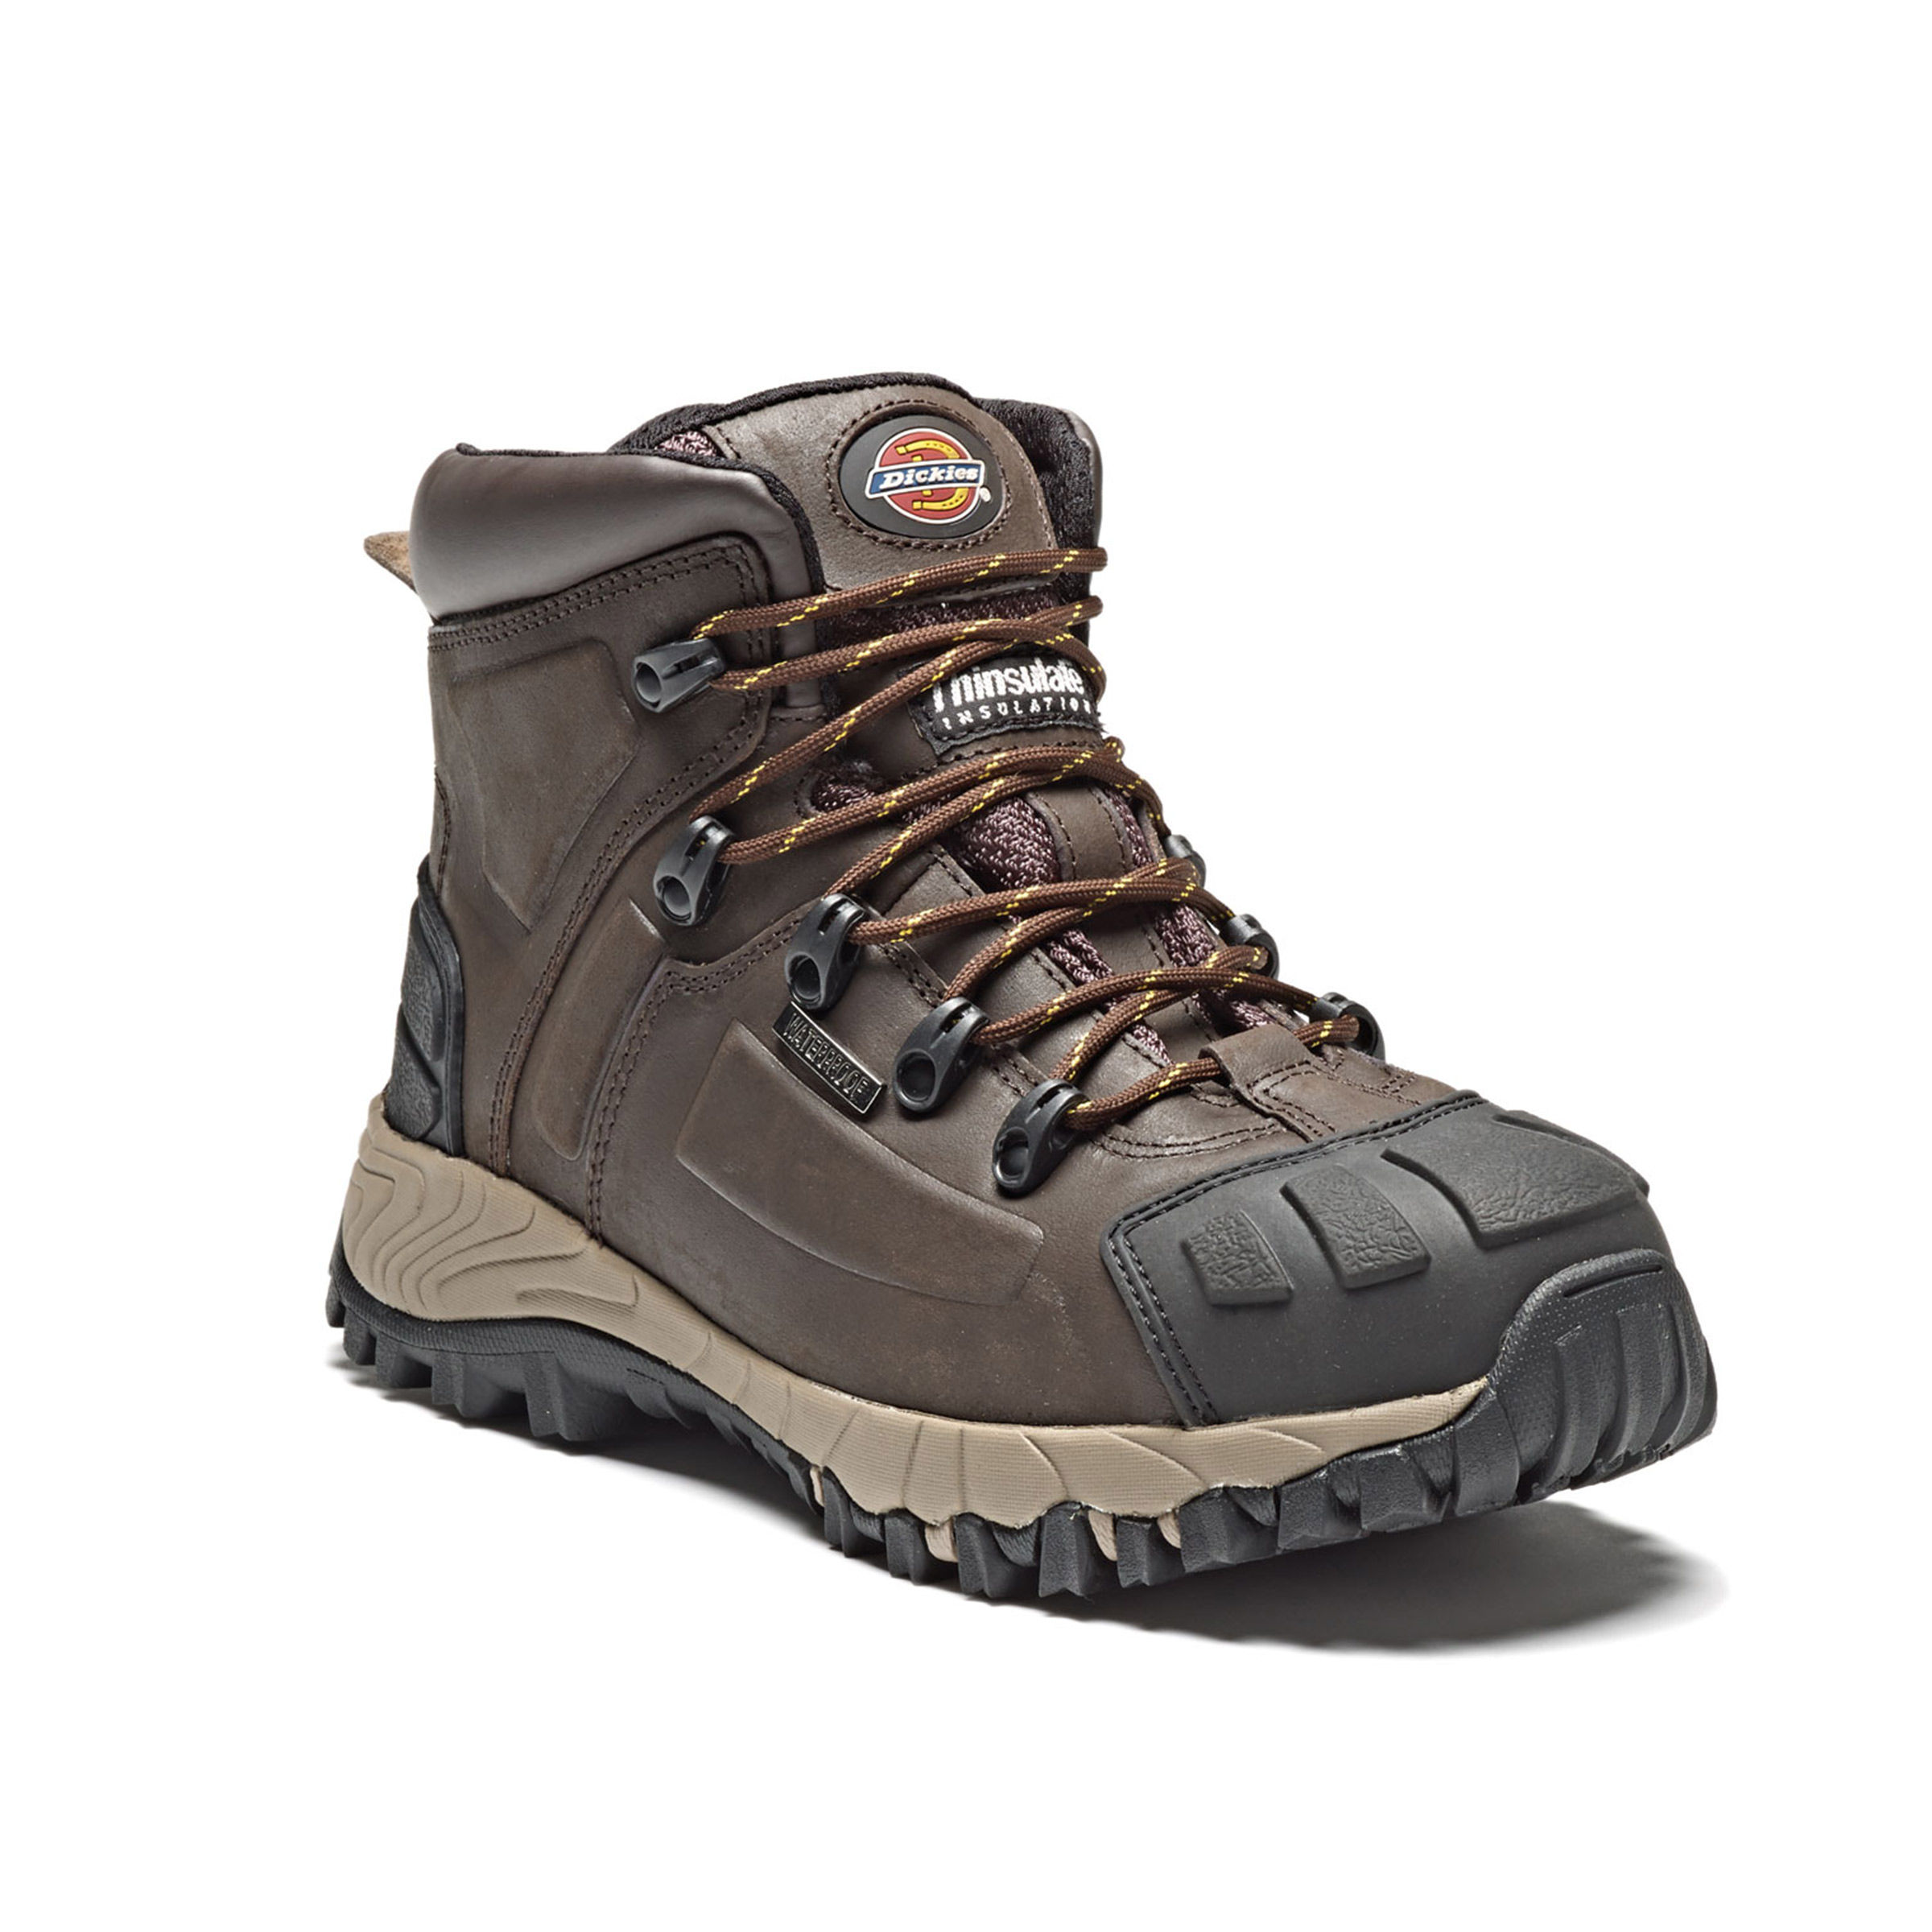 cb94afb0cfa Dickies FD23310 Medway Safety Hiker Boot (Brown) - Size 9